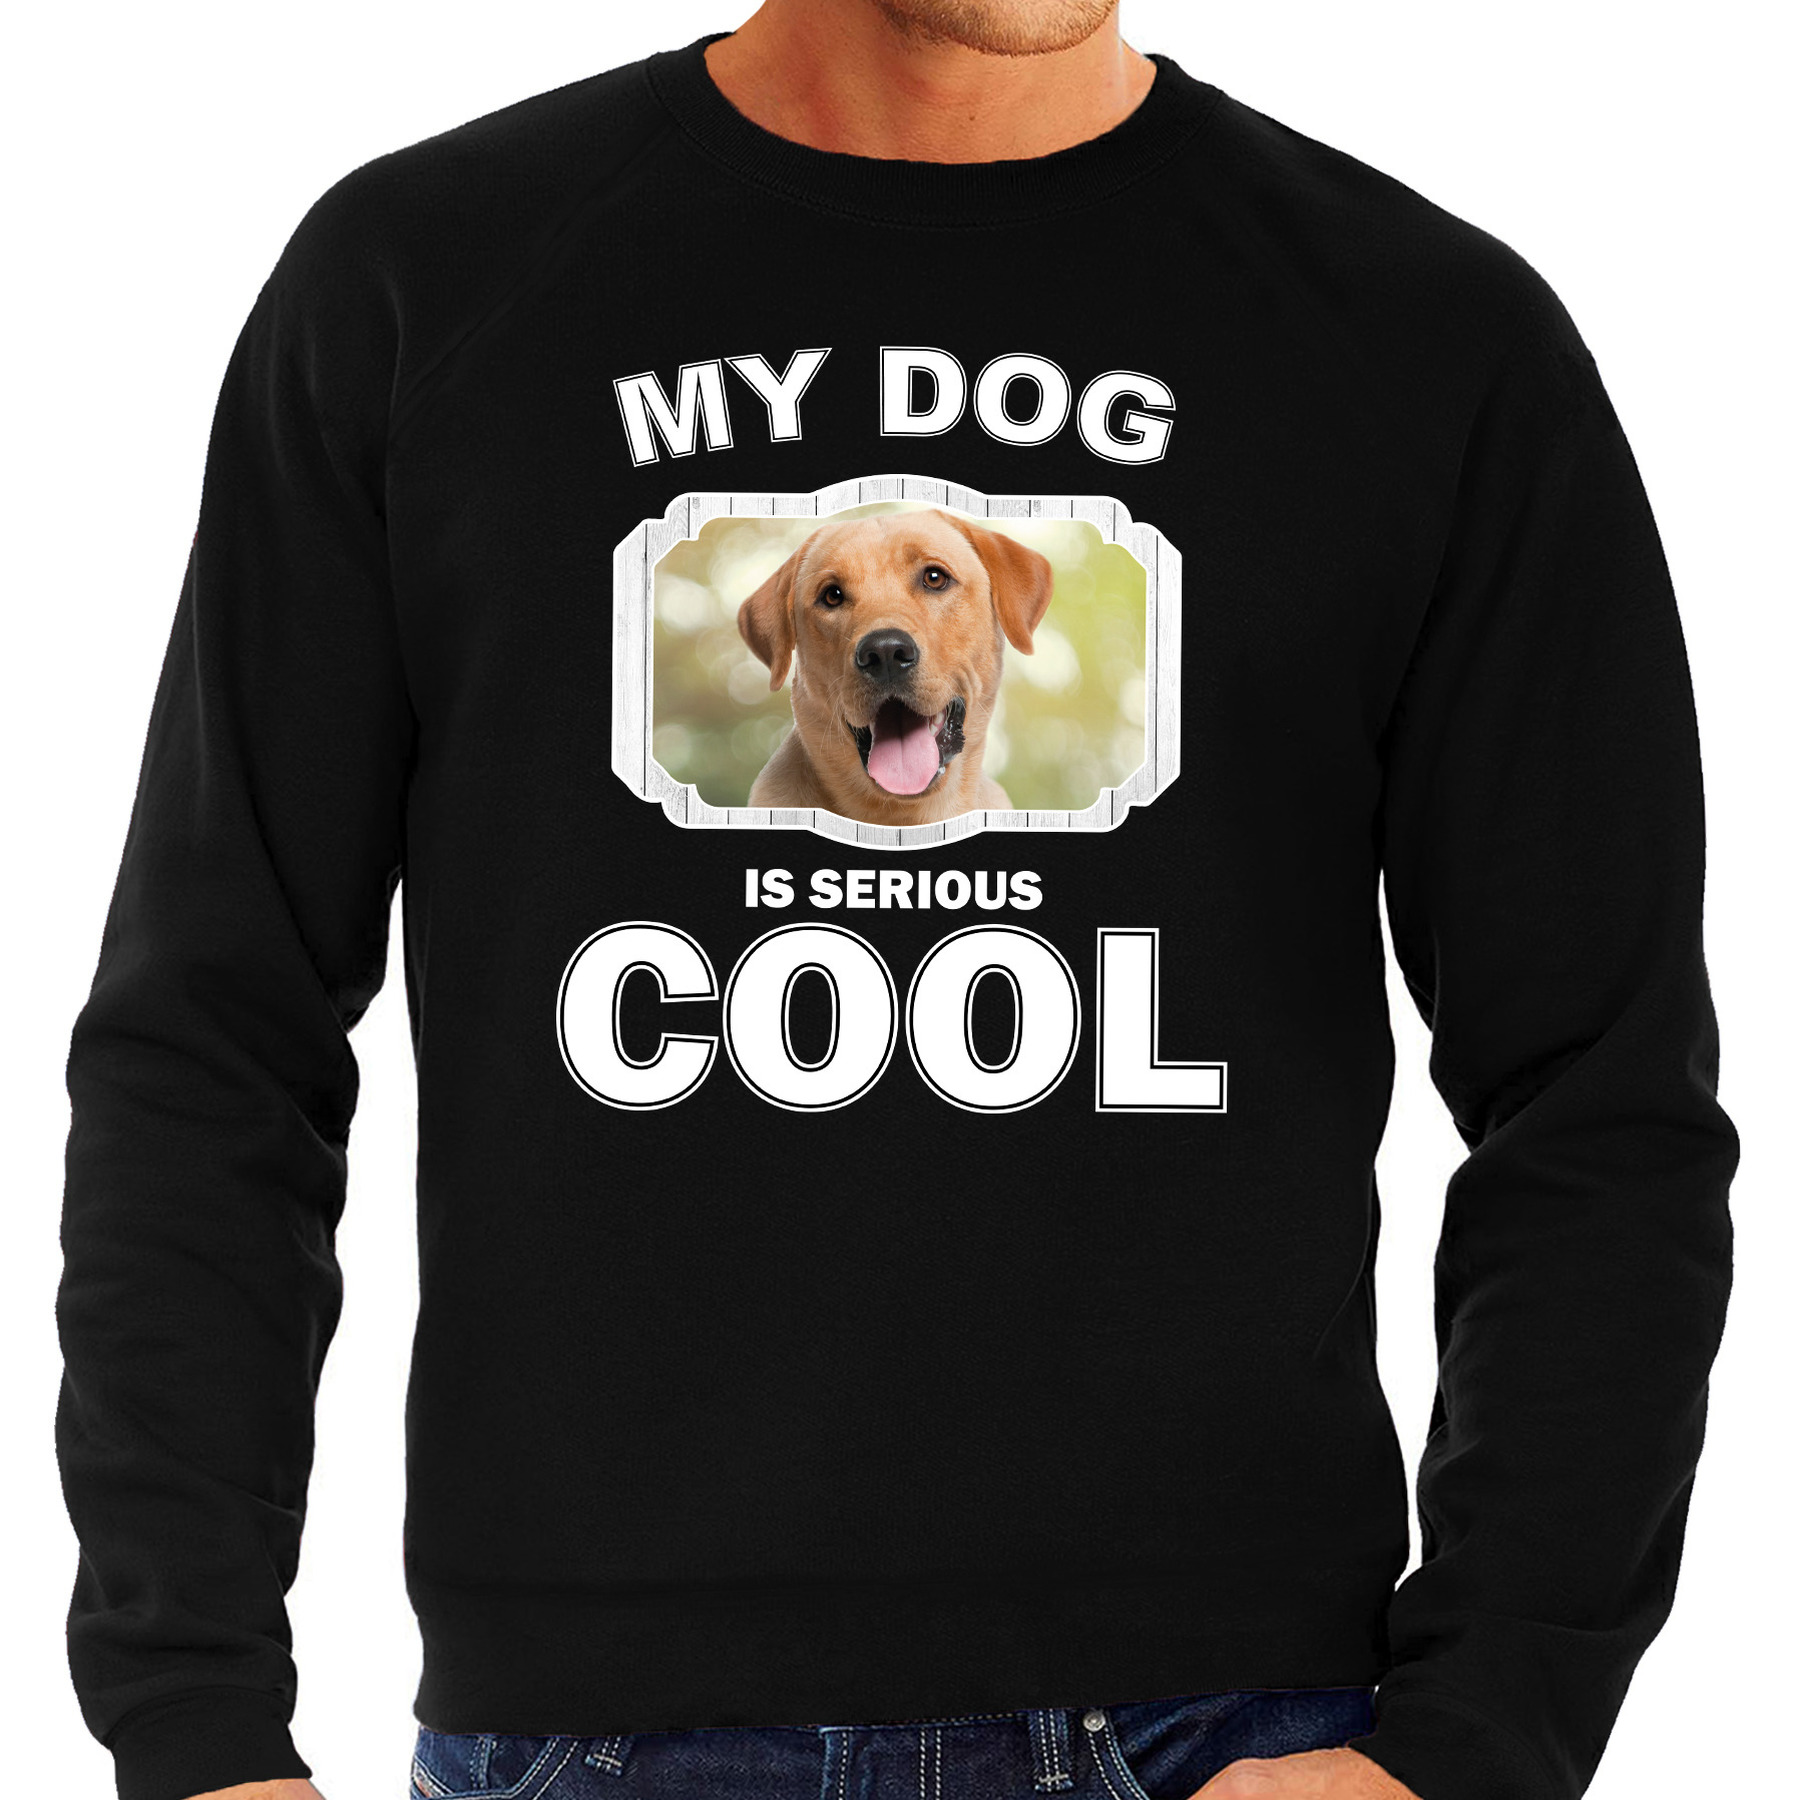 Labrador retriever honden sweater - trui my dog is serious cool zwart voor heren